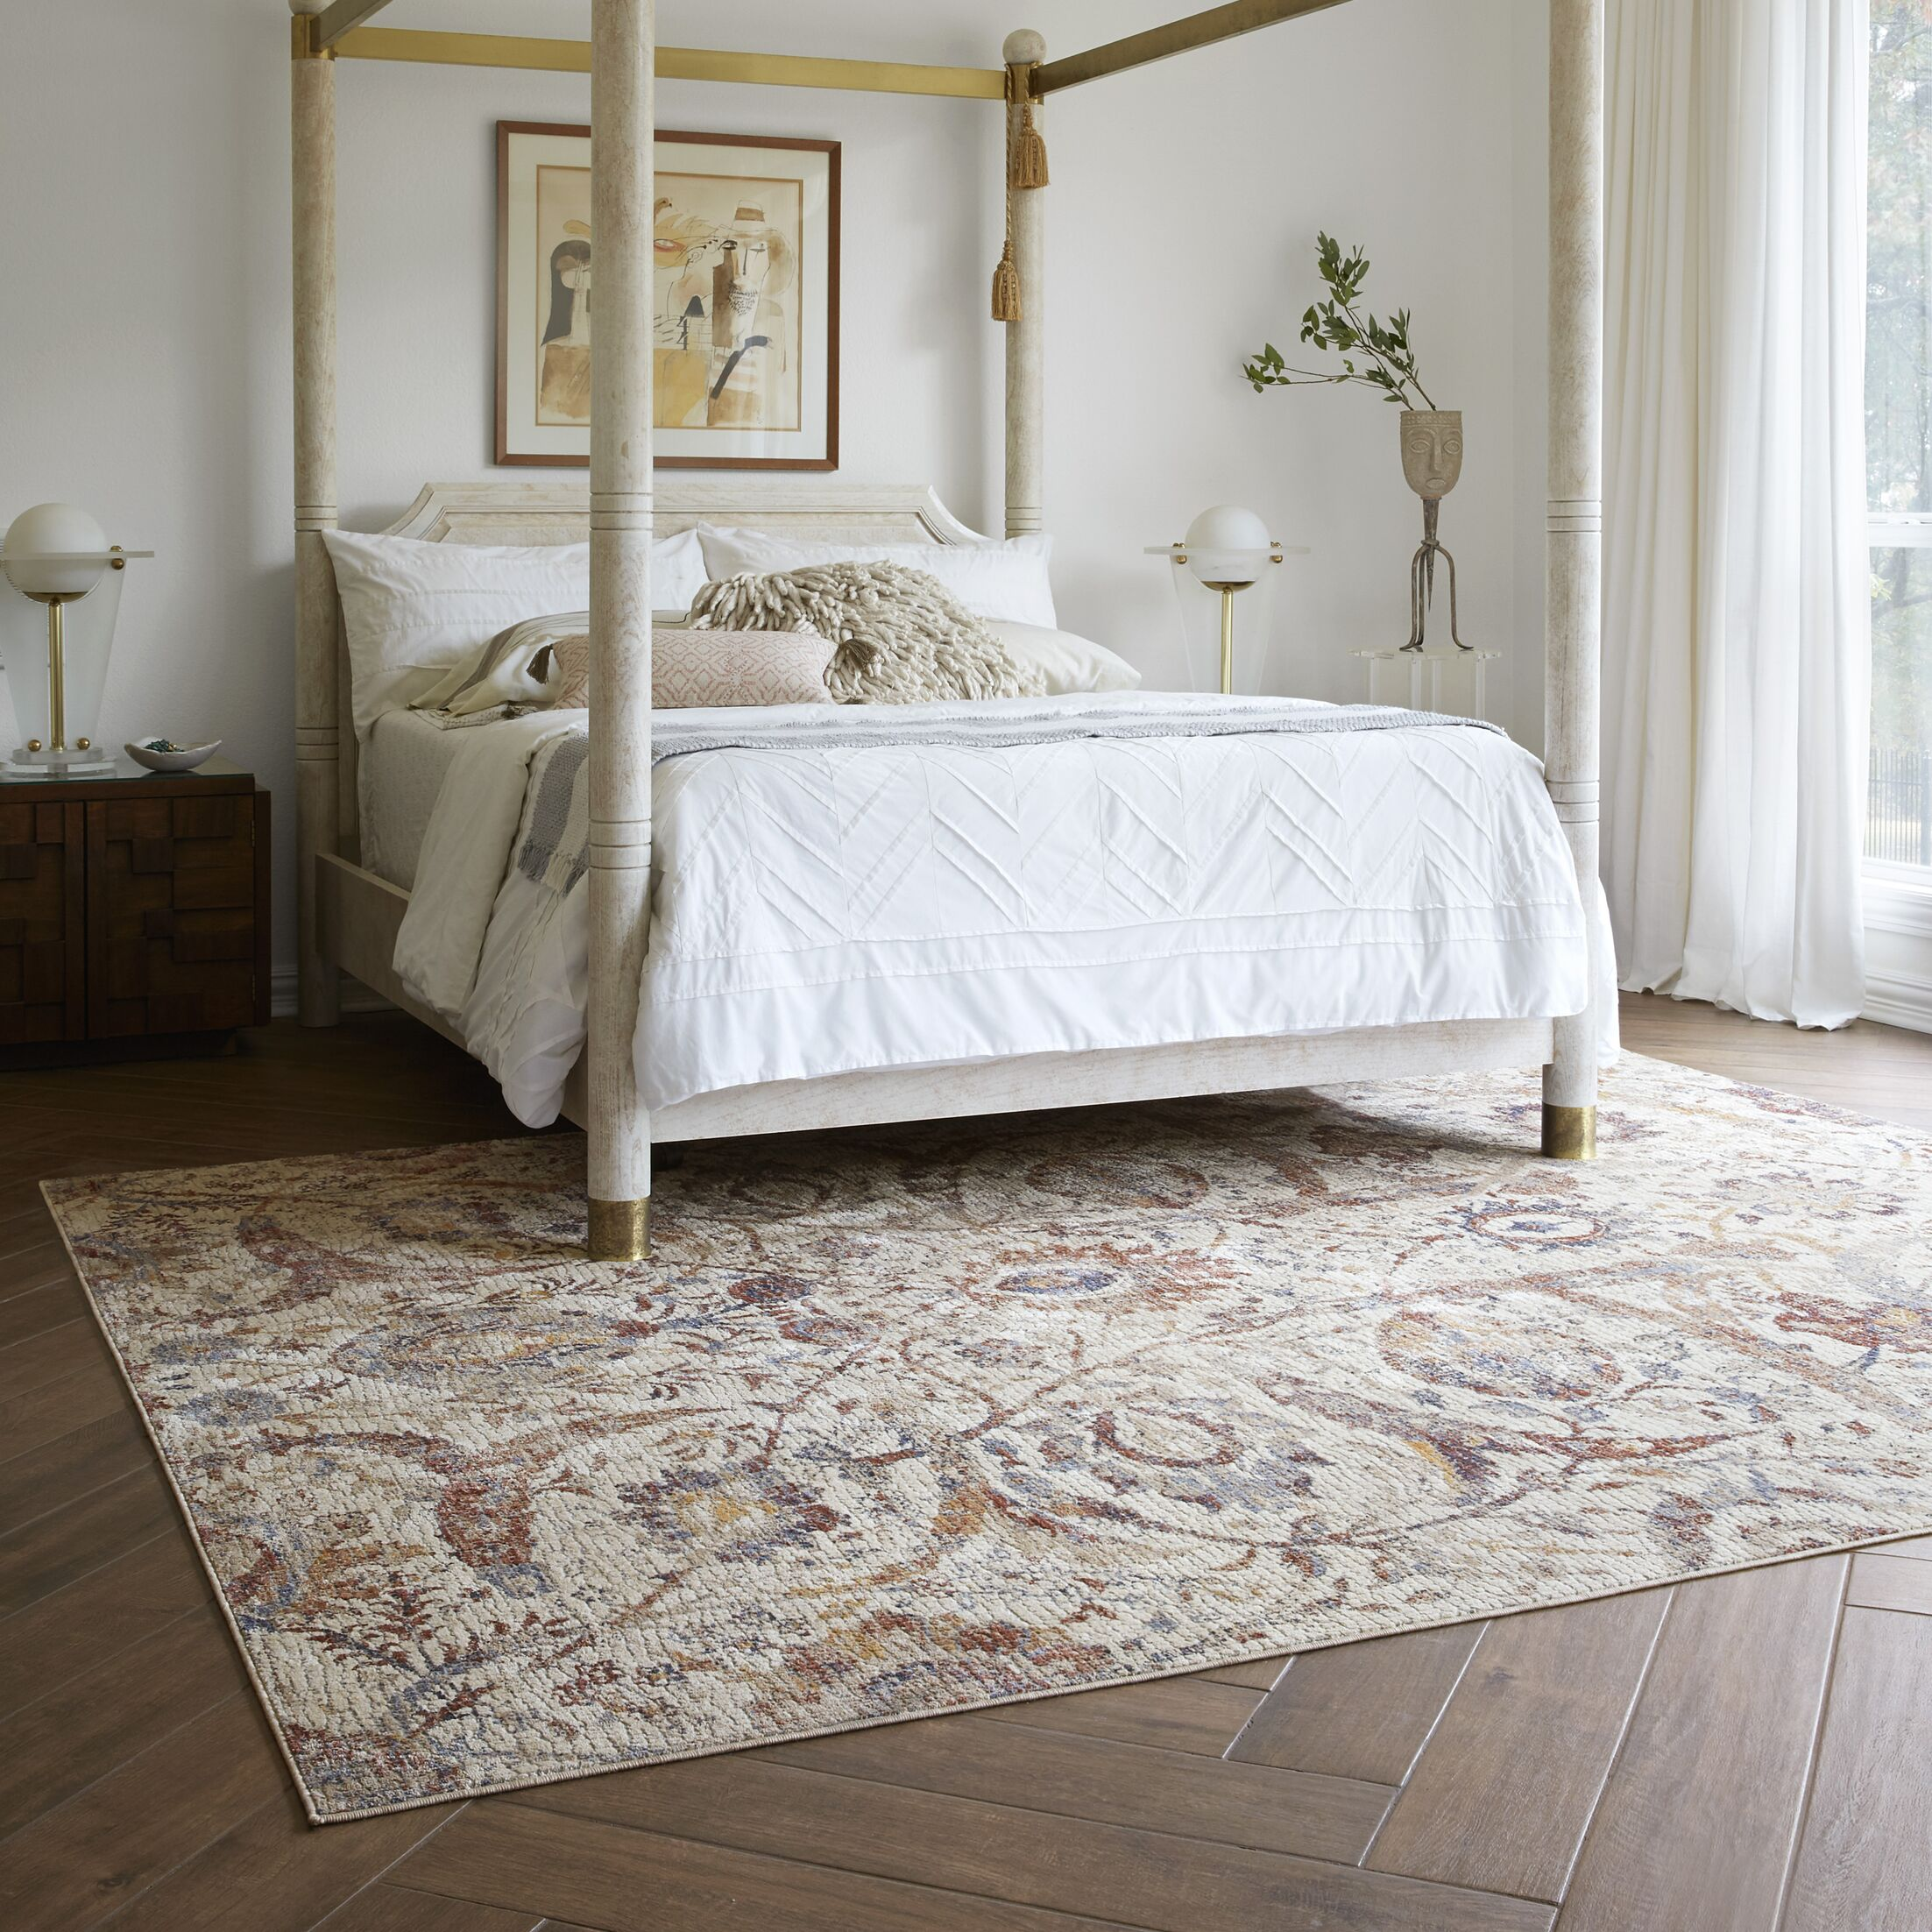 Dietrick Hand-Hooked Ivory Area Rug Rug Size: Runner 2'8